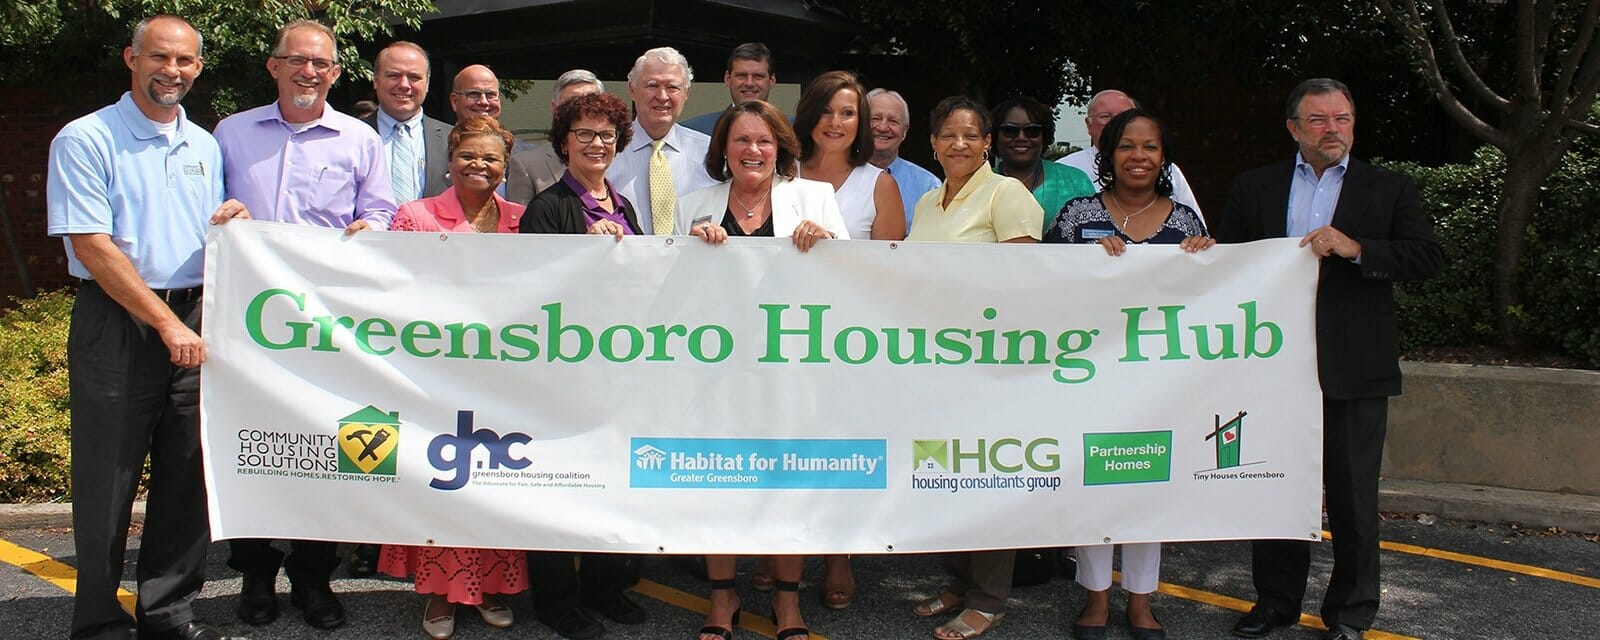 greensboro housing hub